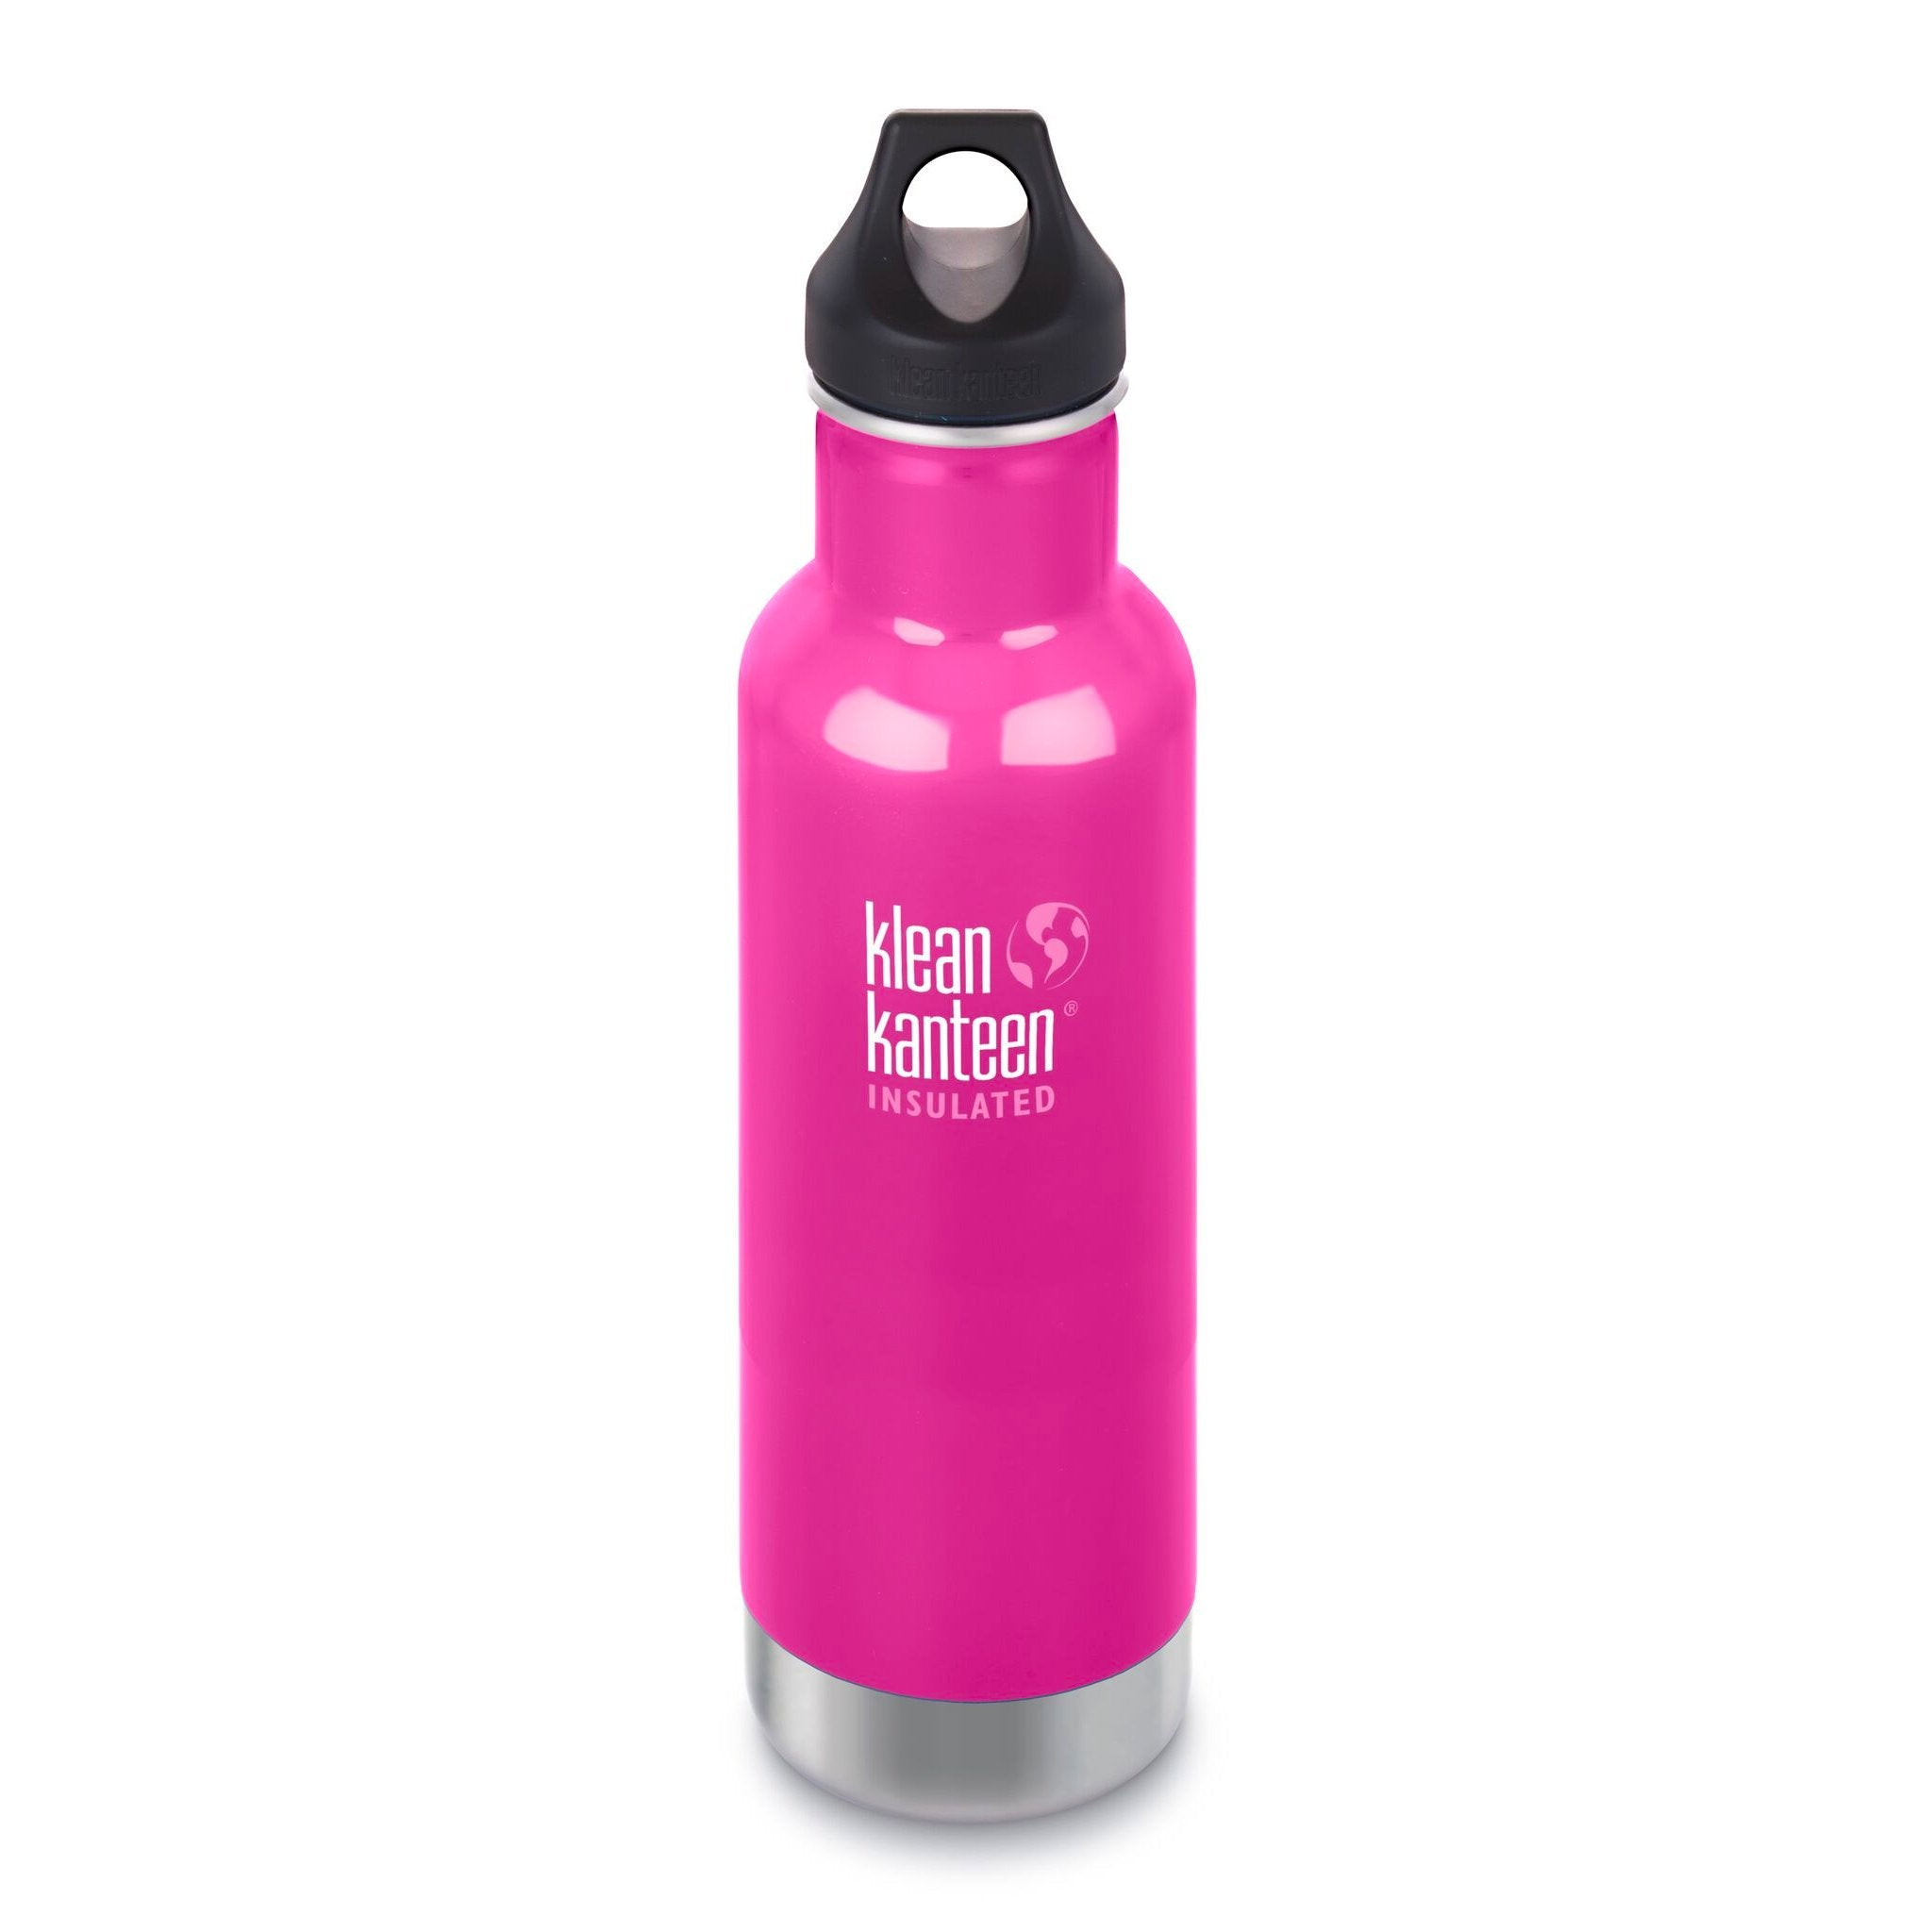 Klean Kanteen Stainless Steel Insulated Classic Water Bottle